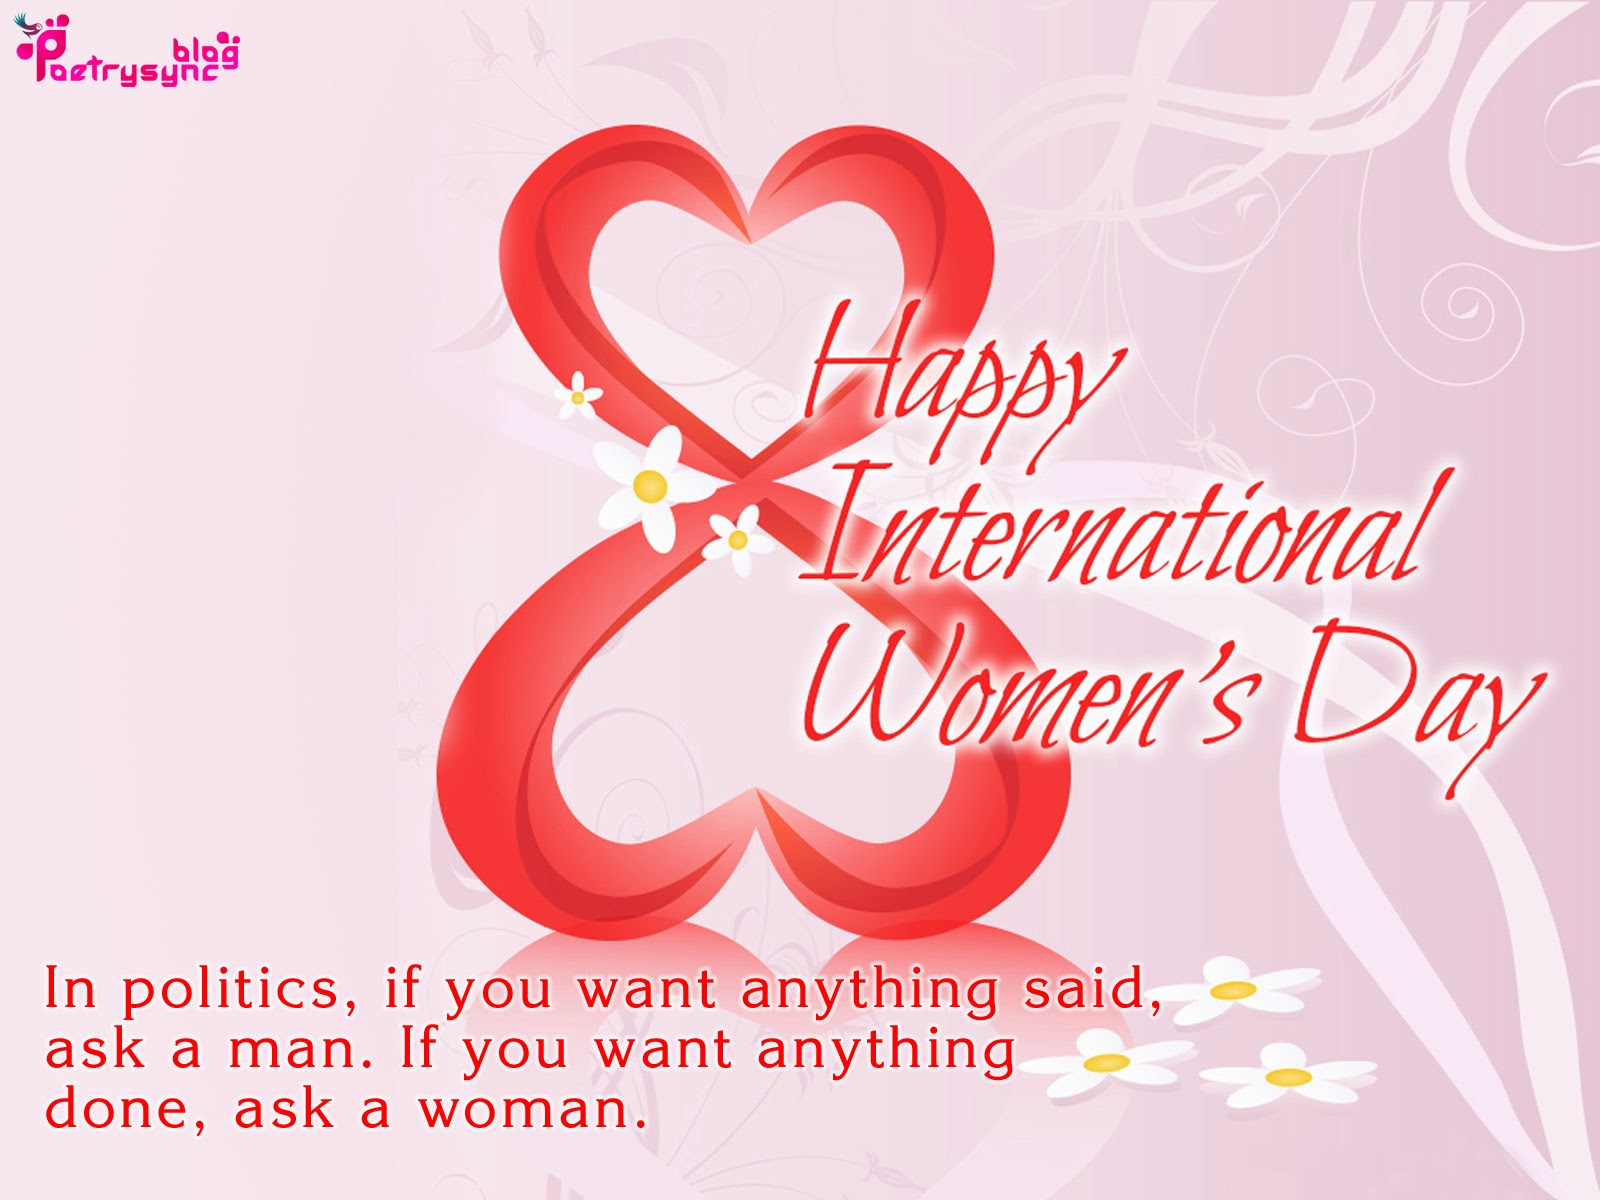 Happy-International-Womens-Day-Quote-Card-Image-and-Picture-for-Greetings-and-Wishes-March-8